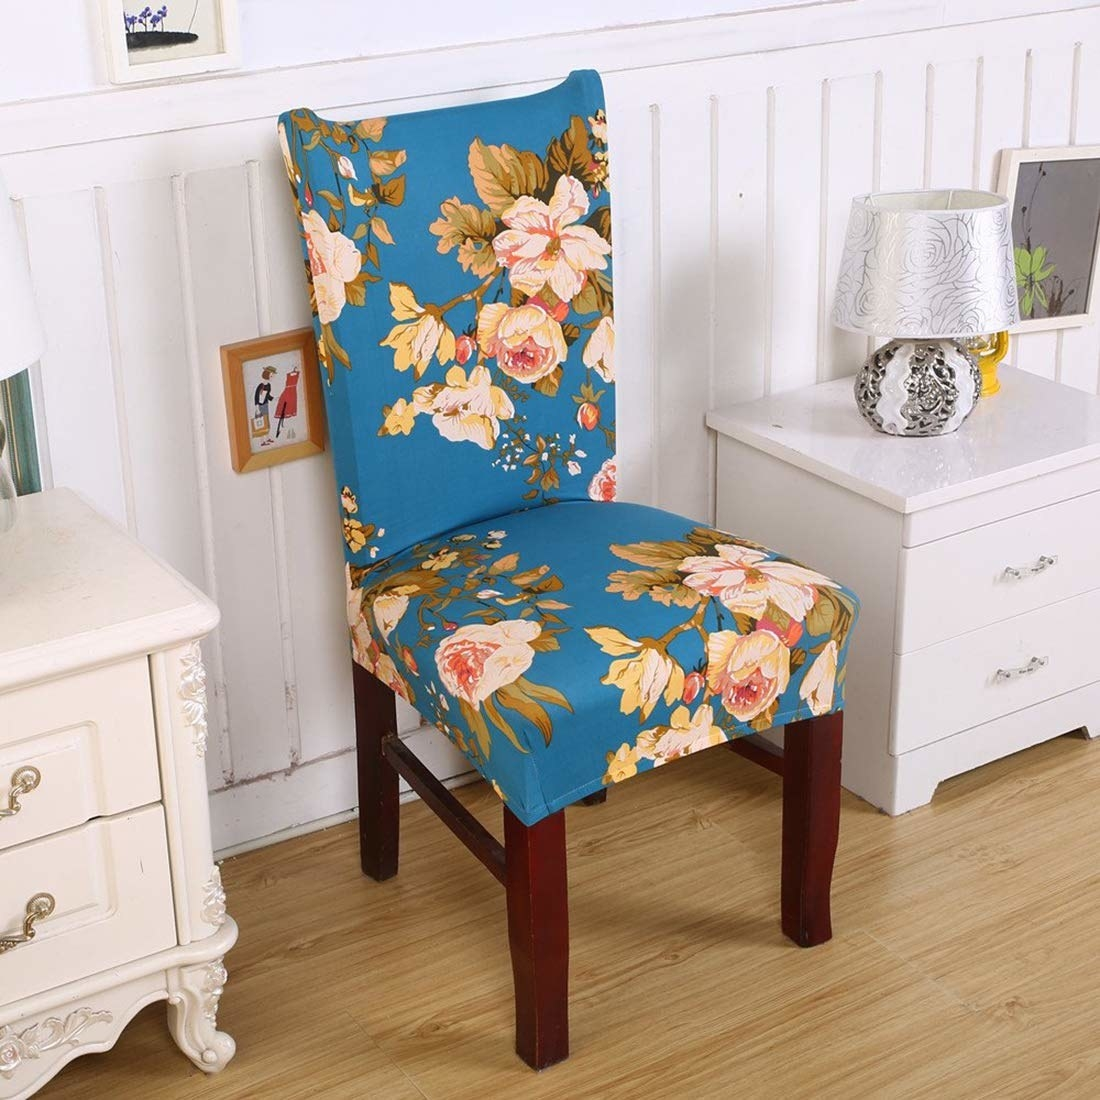 A chair covered in blue floral slip-on cover.